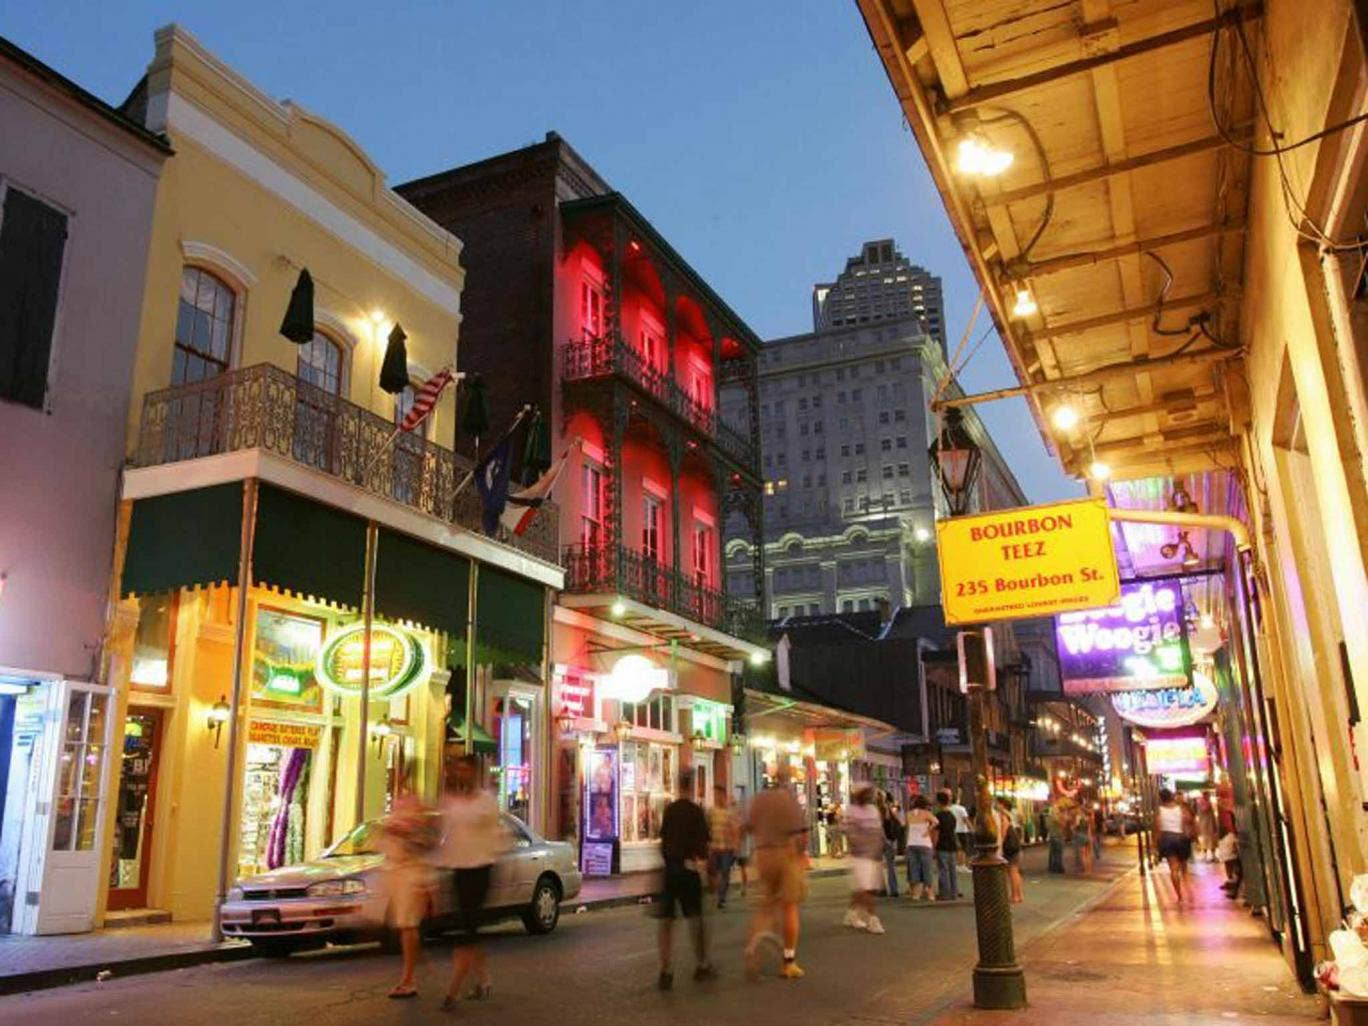 travel americas deep south endless opportunities first class road trip